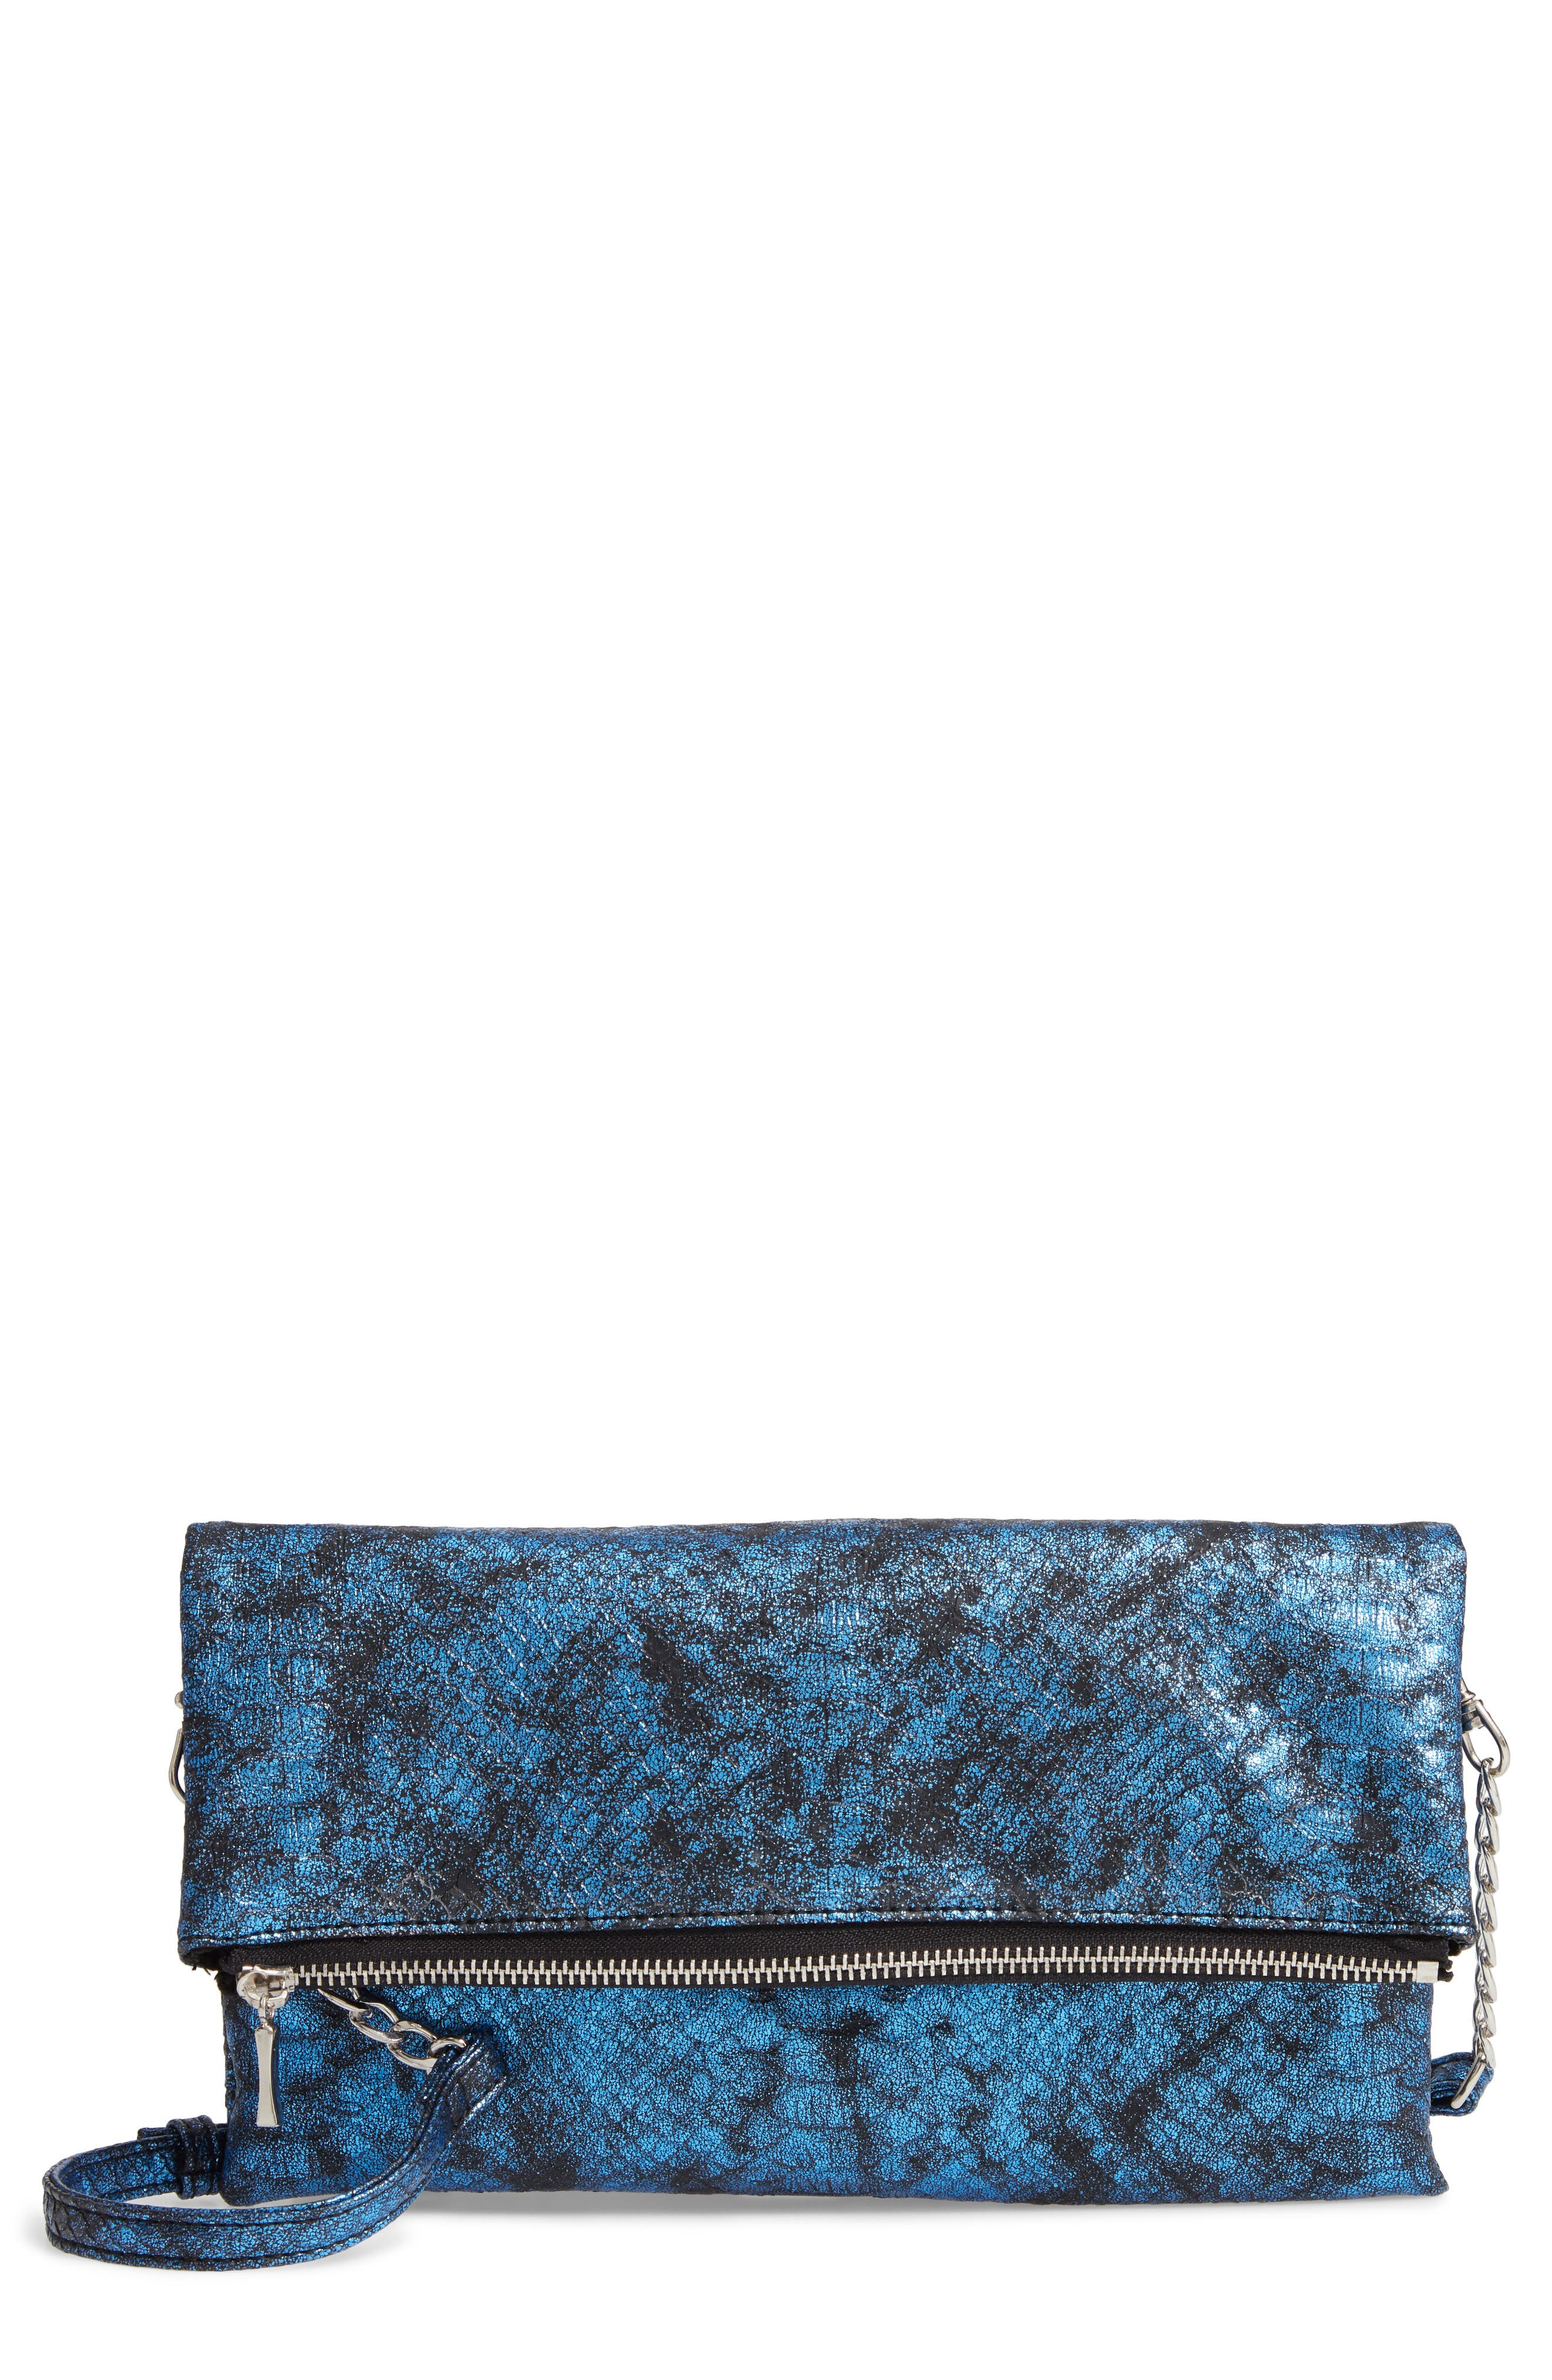 SOLE SOCIETY, Snake Embossed Faux Leather Clutch, Main thumbnail 1, color, 400